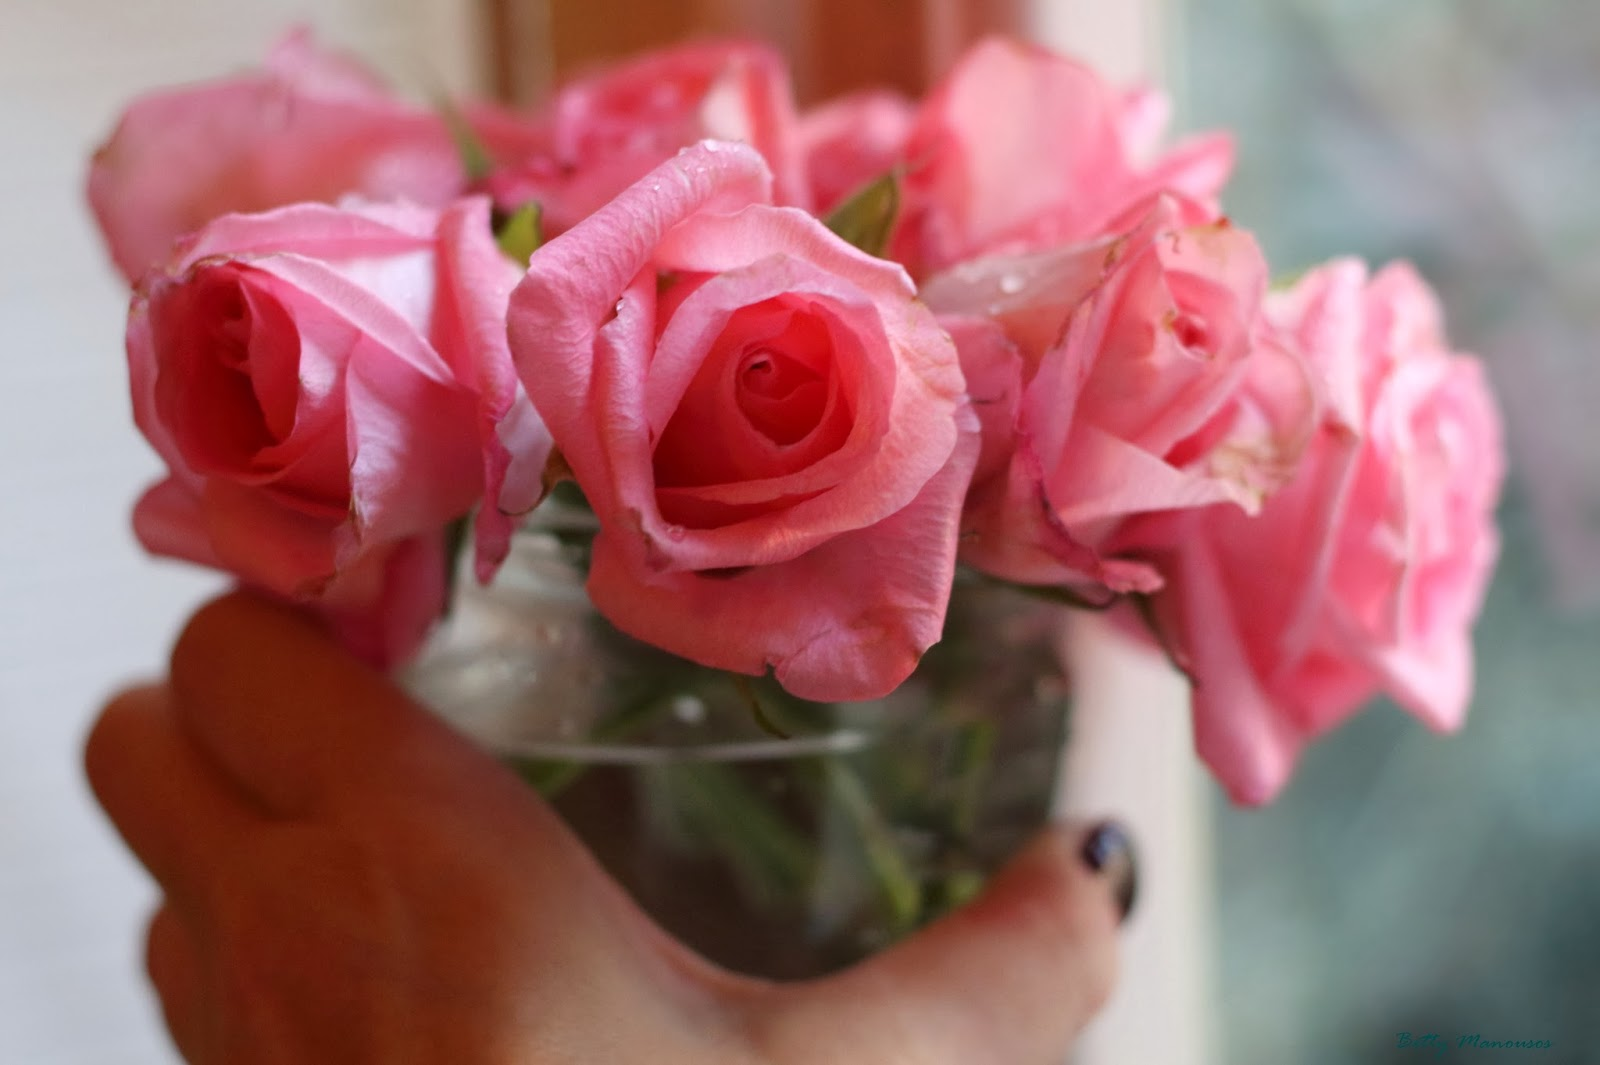 good morning bunch of beautiful pink roses